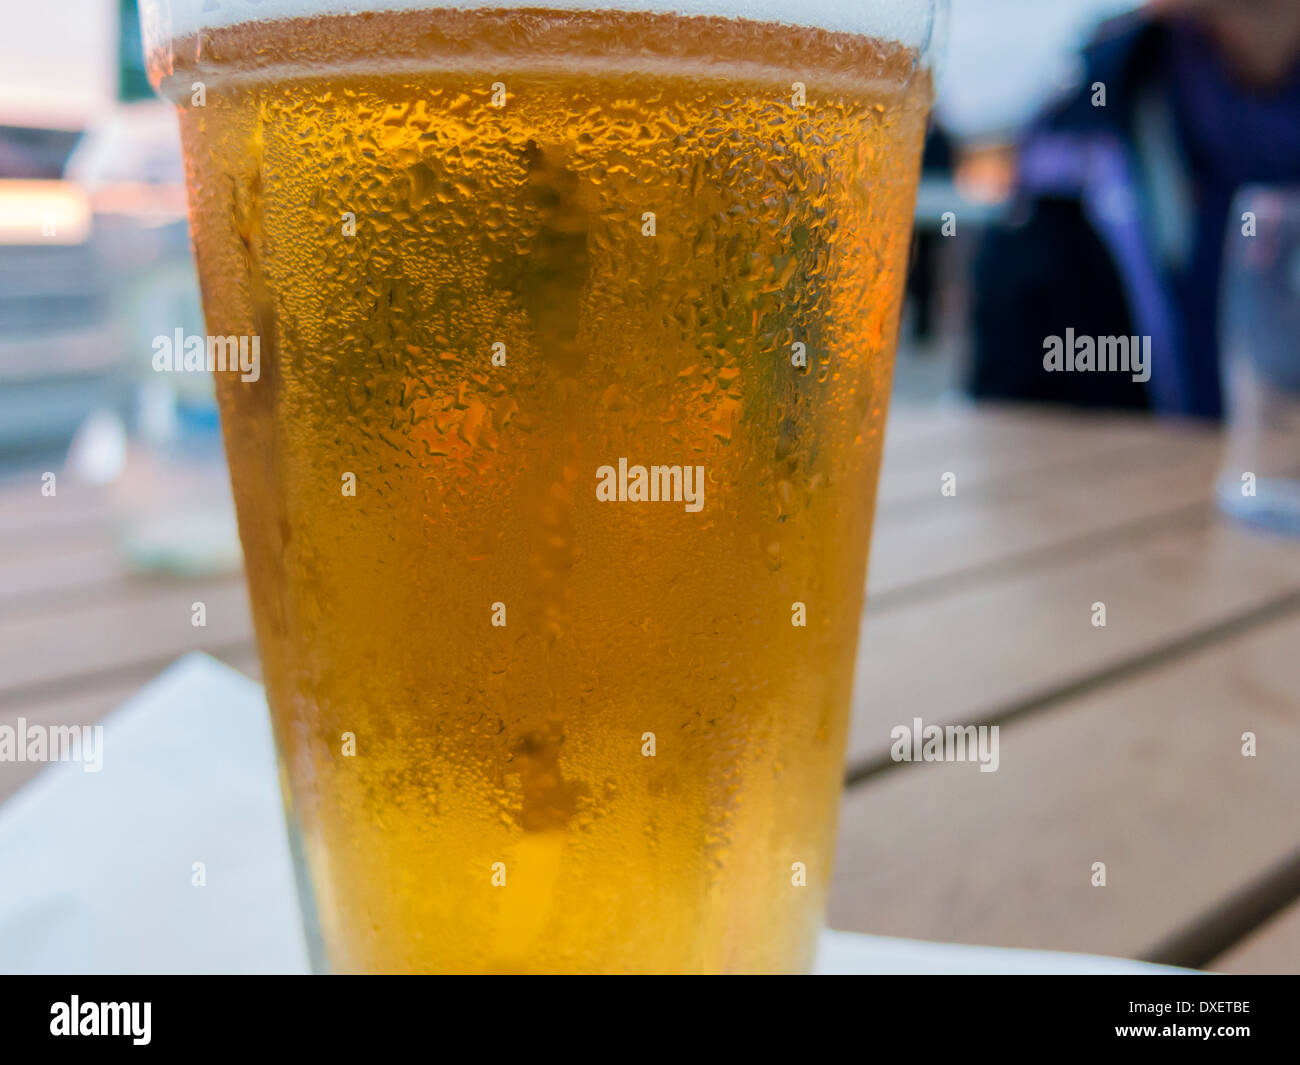 Cold pint glass full of lager on table Cromer England - Stock Image